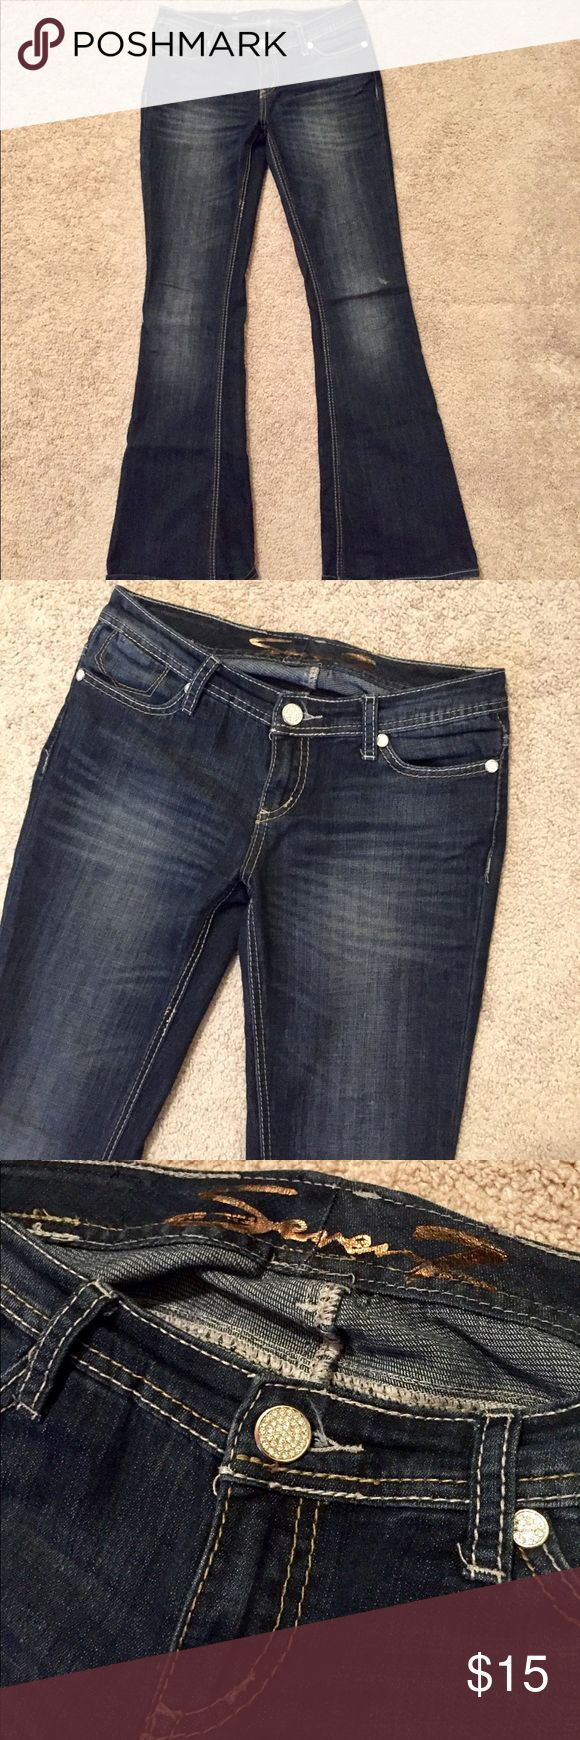 Women's Seven7 Jeans size 28 Pair of women's Seven7 Jeans size 28. These are in great used condition with very slight/minor signs of wash/wear especially around the foot openings (see photos). Comes from a clean and smoke free home. Please see photos and ask any questions you may have. Don't forget to bundle your likes for a discount!!! 😉 Seven7 Jeans